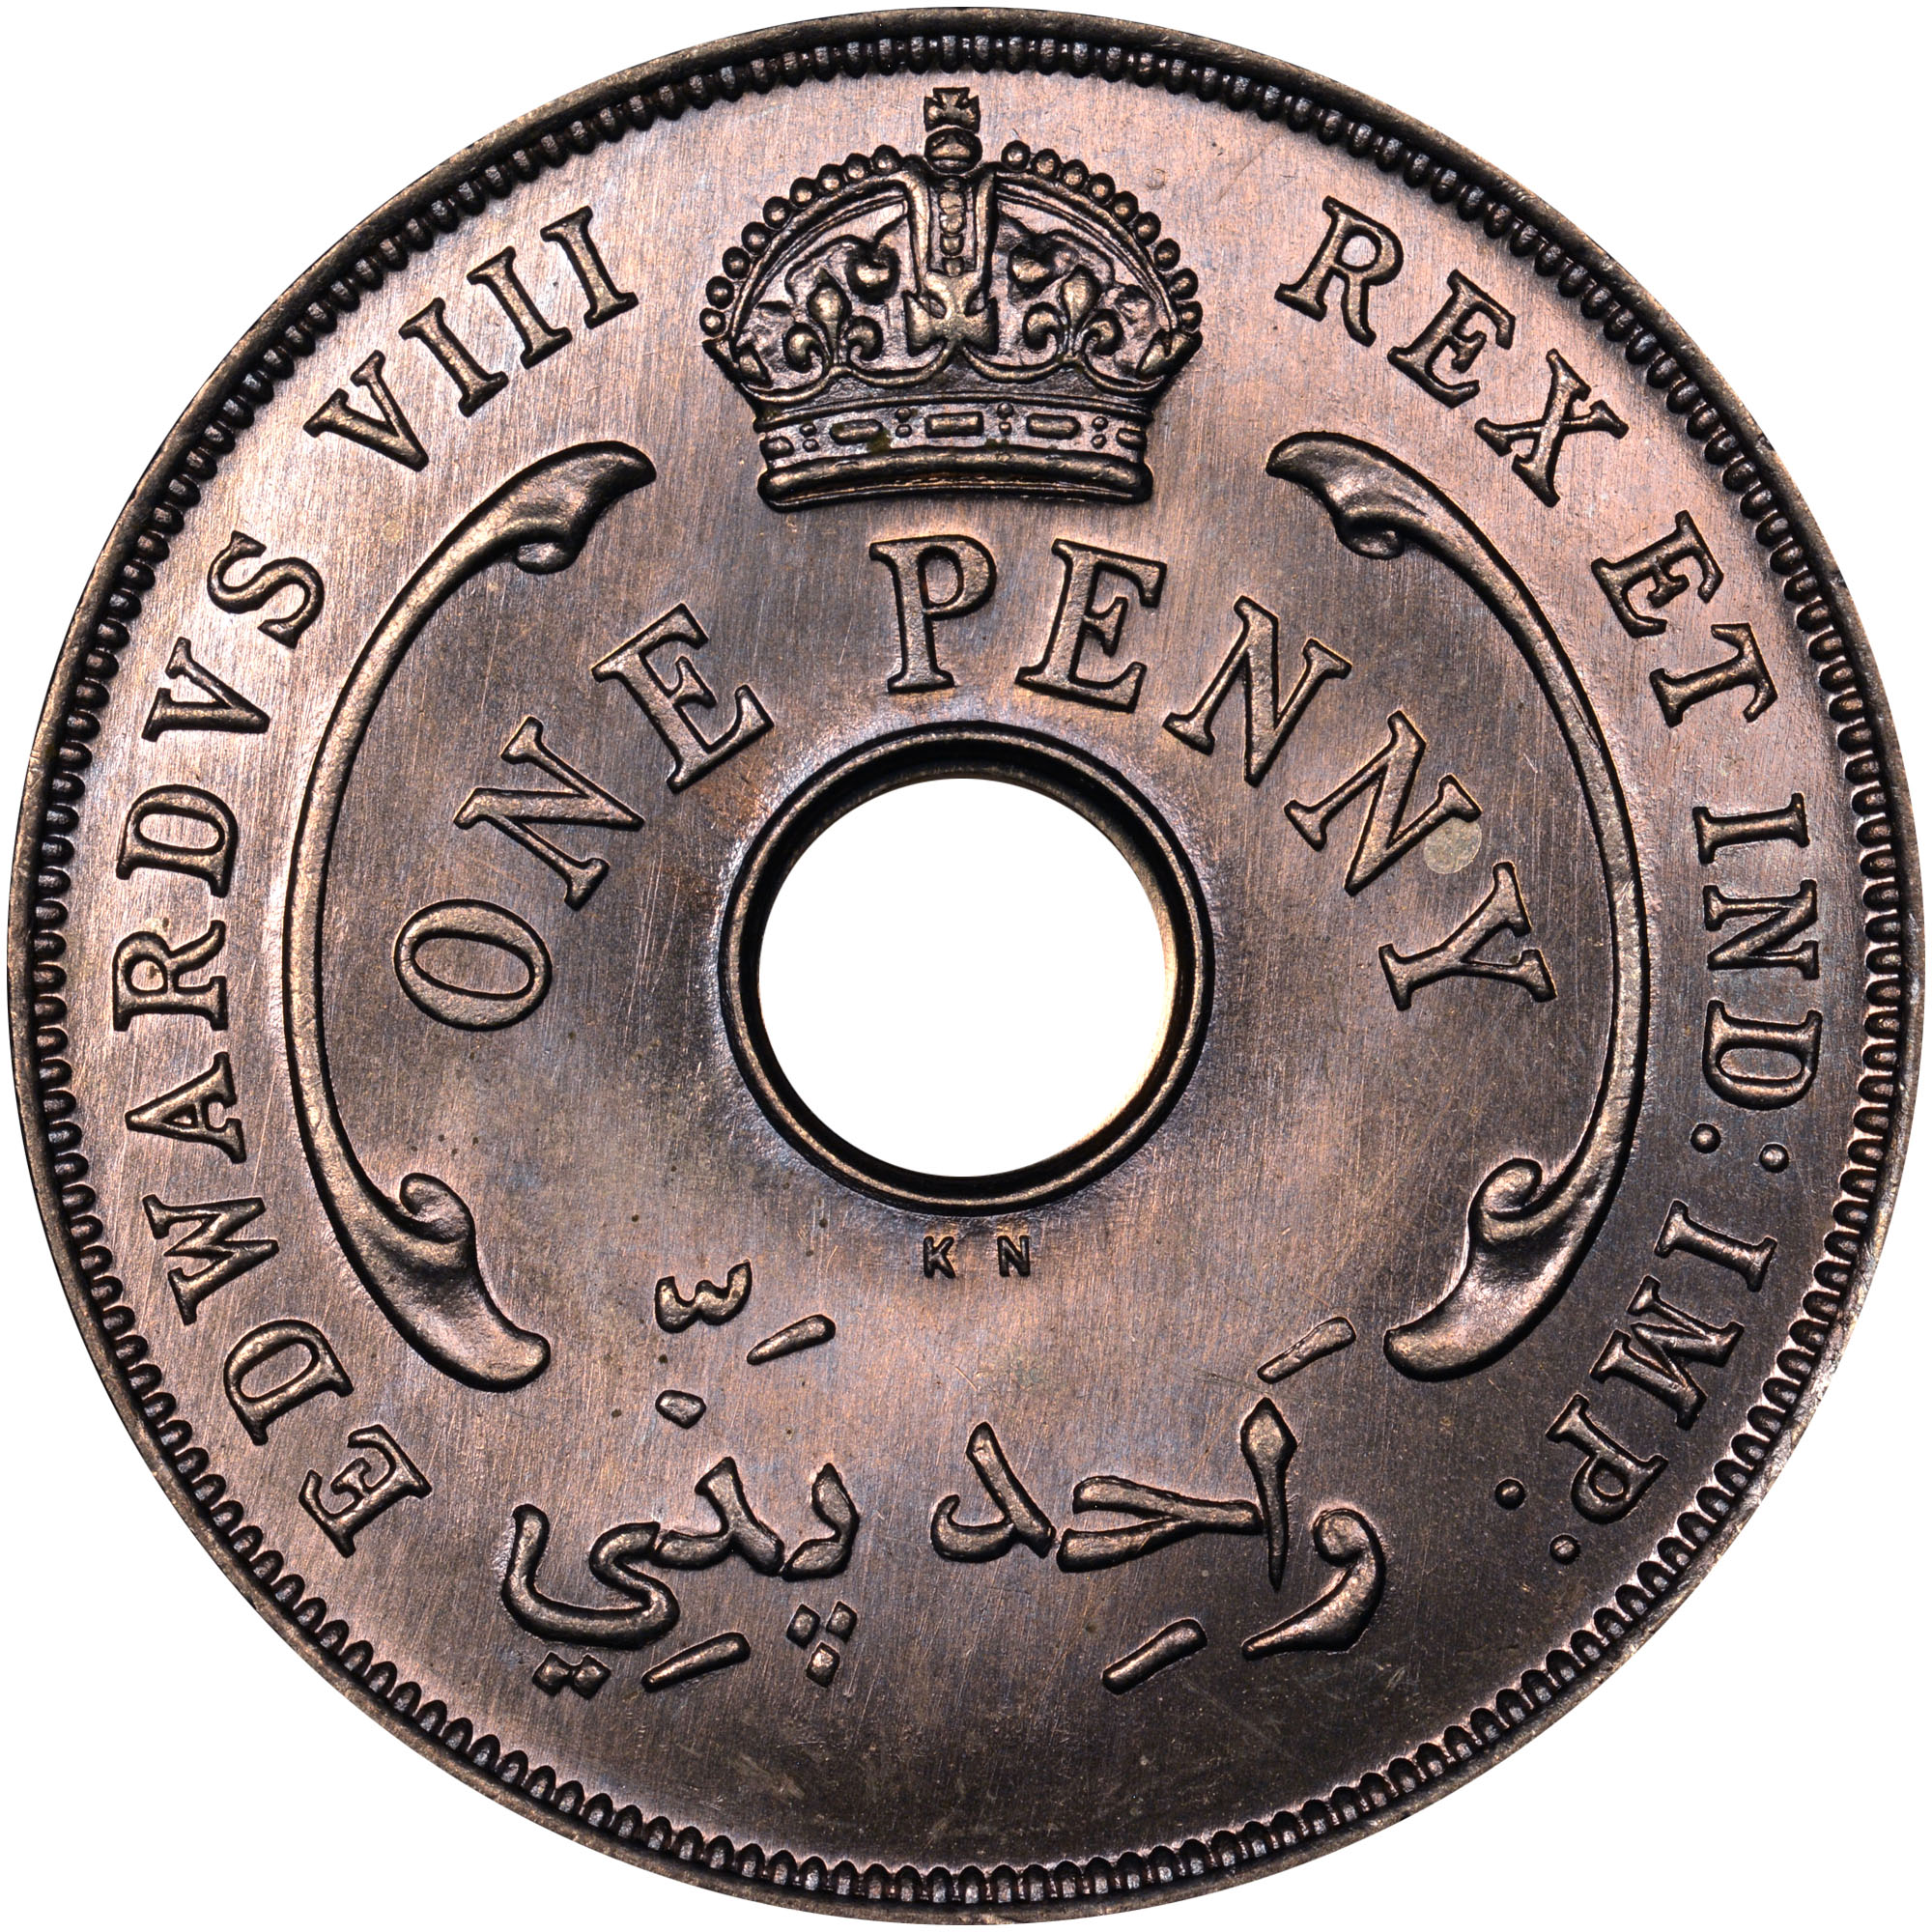 1936 British West Africa Penny obverse